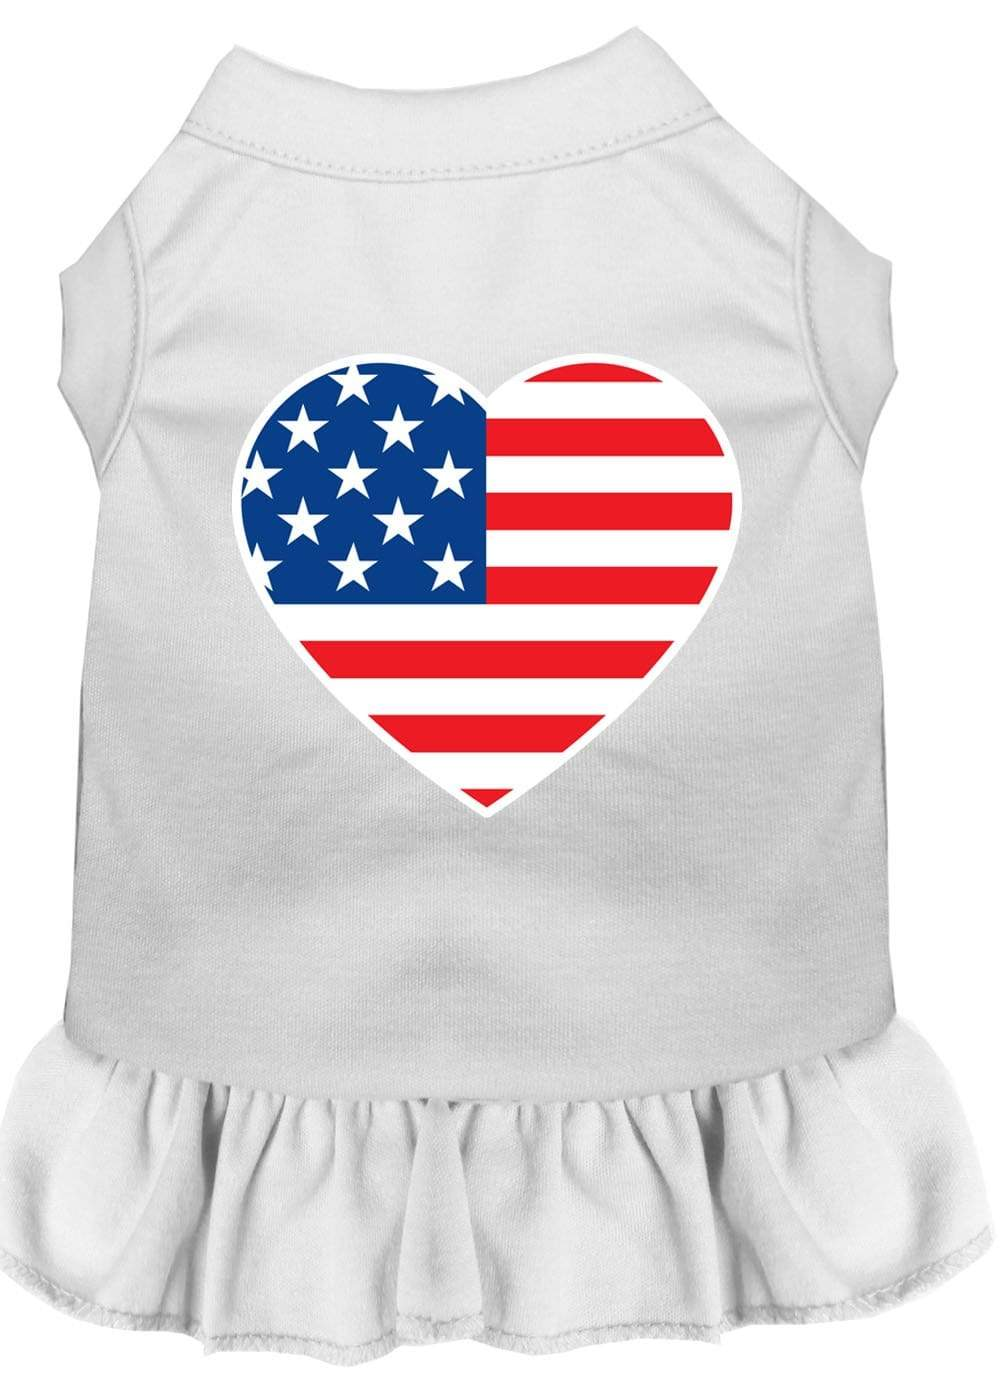 Doggy Stylz Dog-products Apparel White / SMALL American Flag Heart Screen Print Dress White